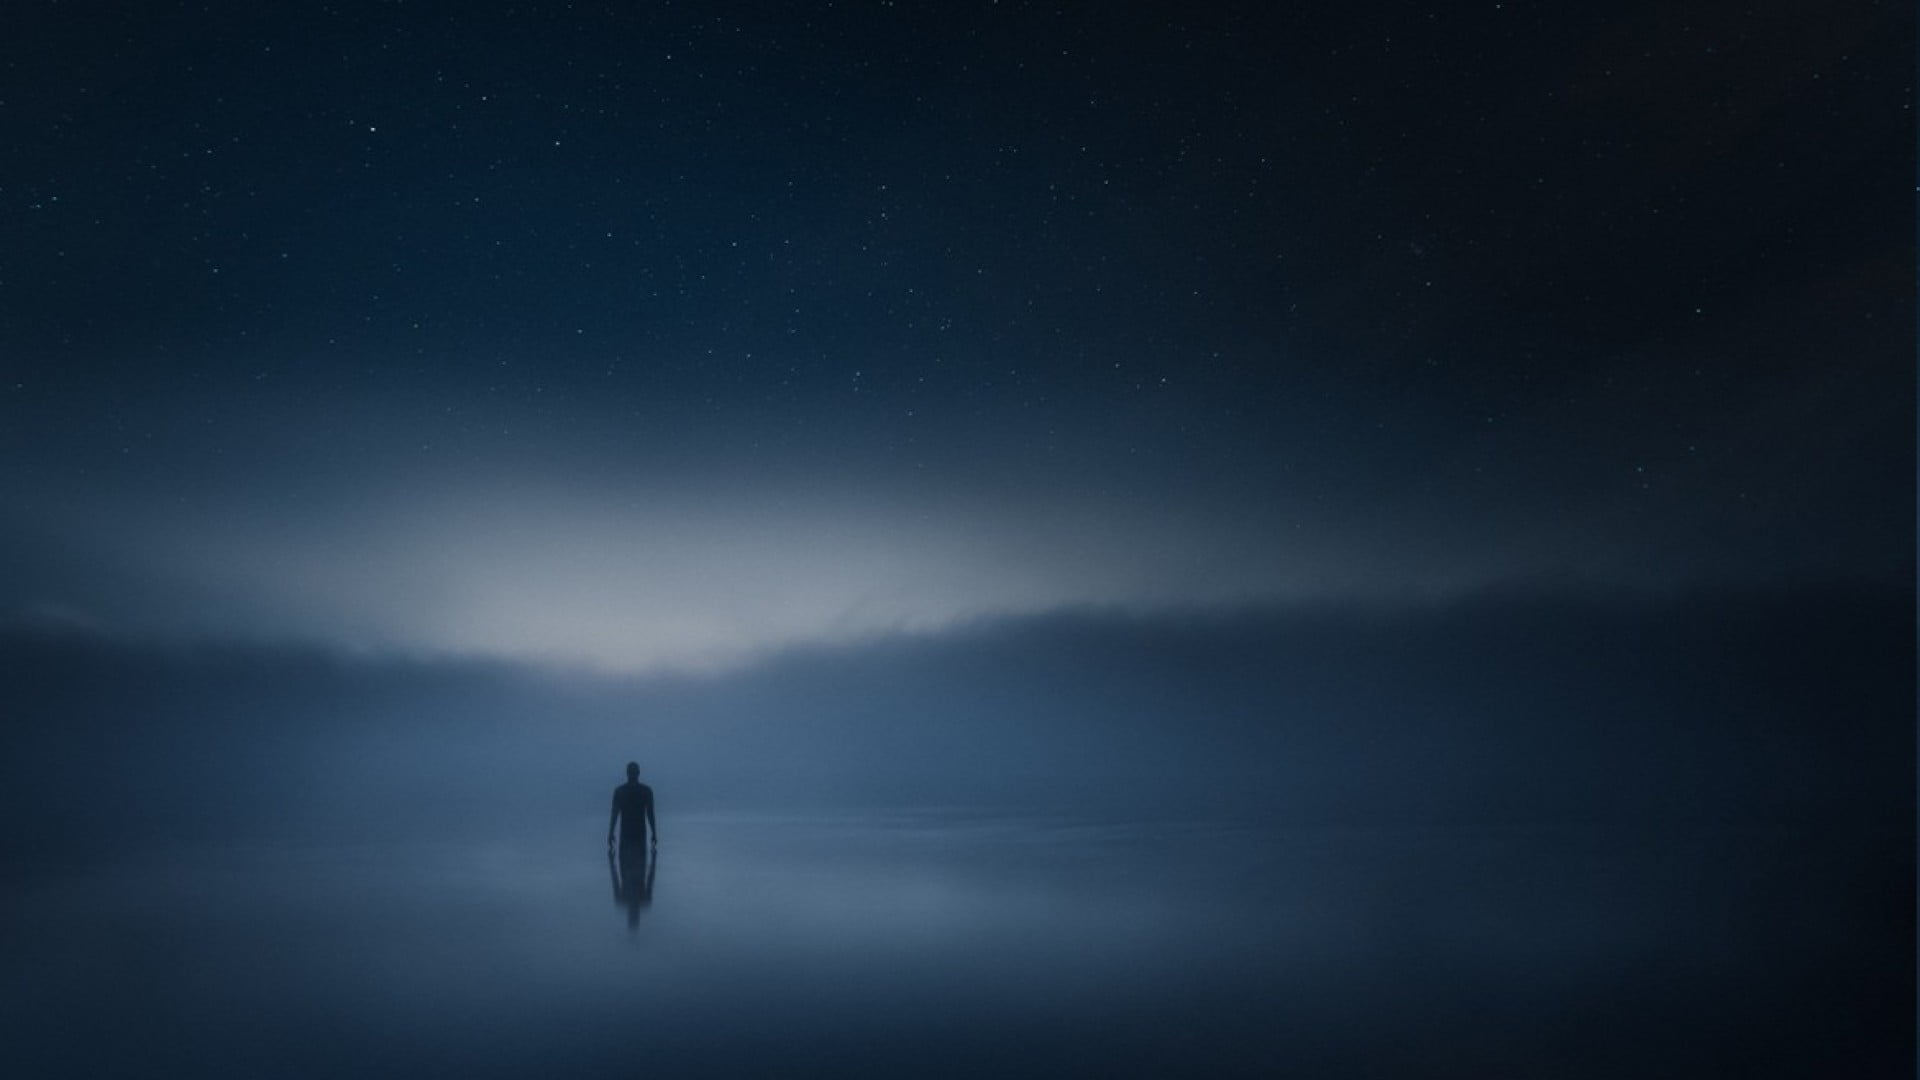 Silhouette of person half submerged in body of water digital 1920x1080